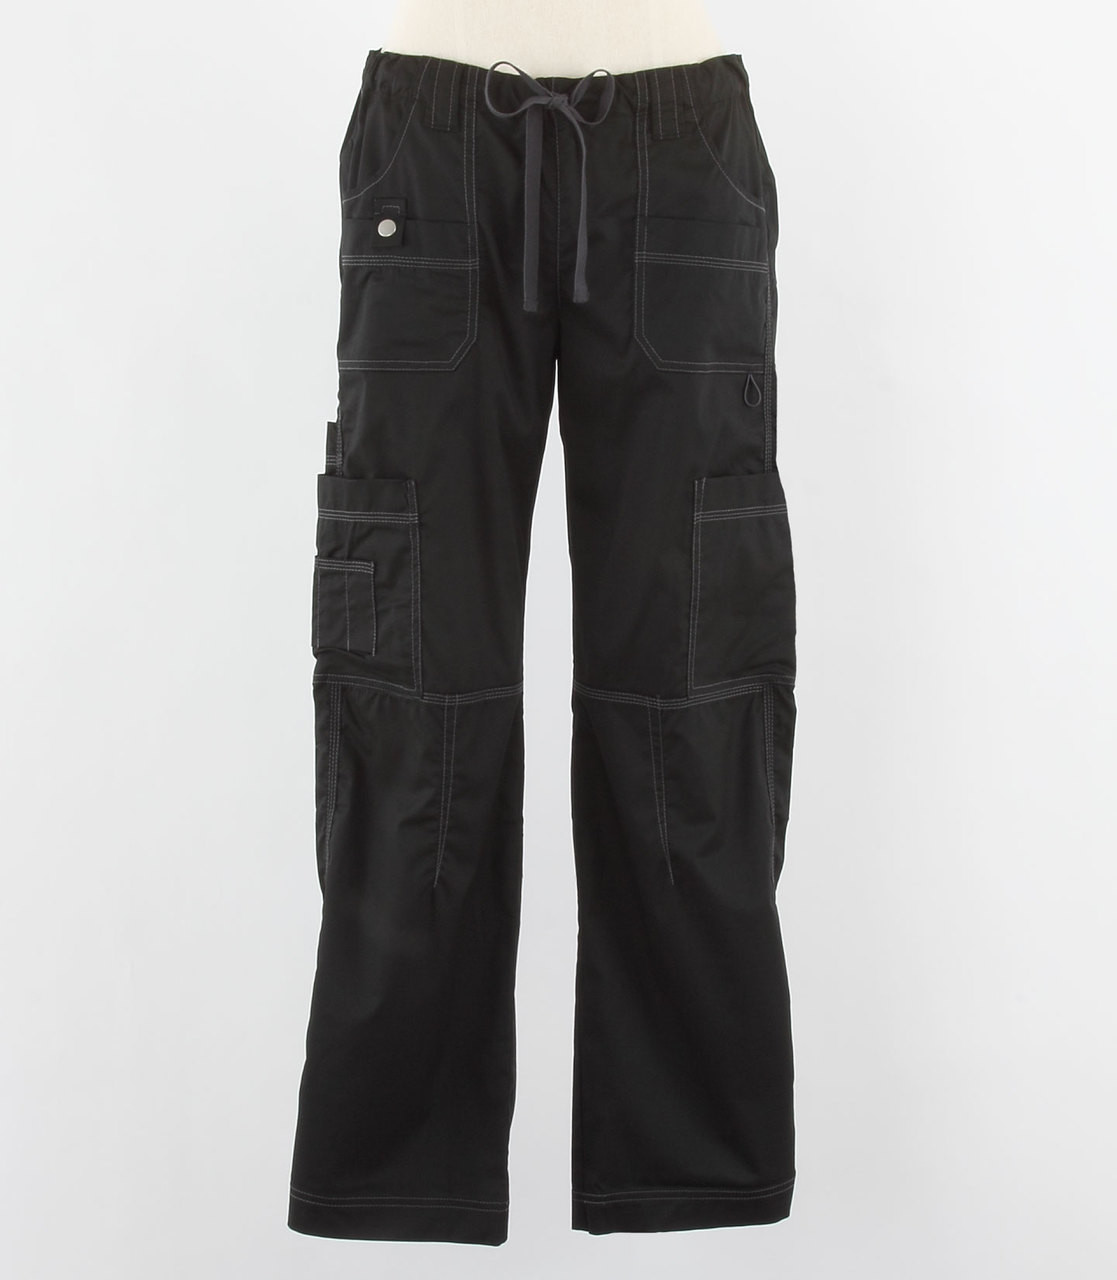 Dickies Gen Flex Womens Cargo Scrub Pants Black - Tall - Scrub Med a48110cf0e